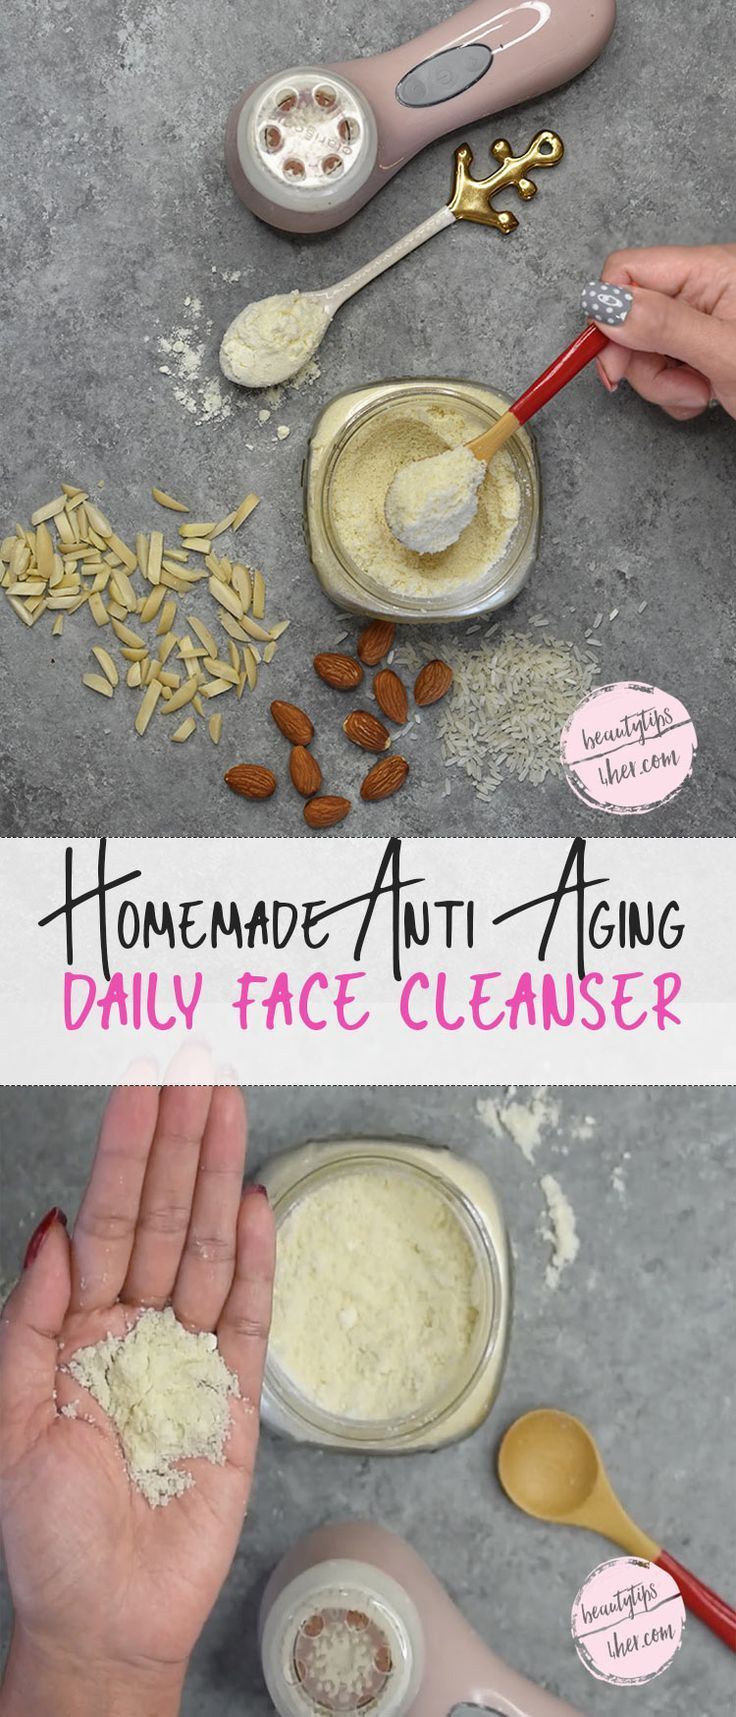 This homemade face cleanser not only moisturizes the skin, it also exfoliates it. Thus, removes the dead skin cells and retain moisture while exposes new skin cells that do, plumping your skin and giving it a more youthful look.